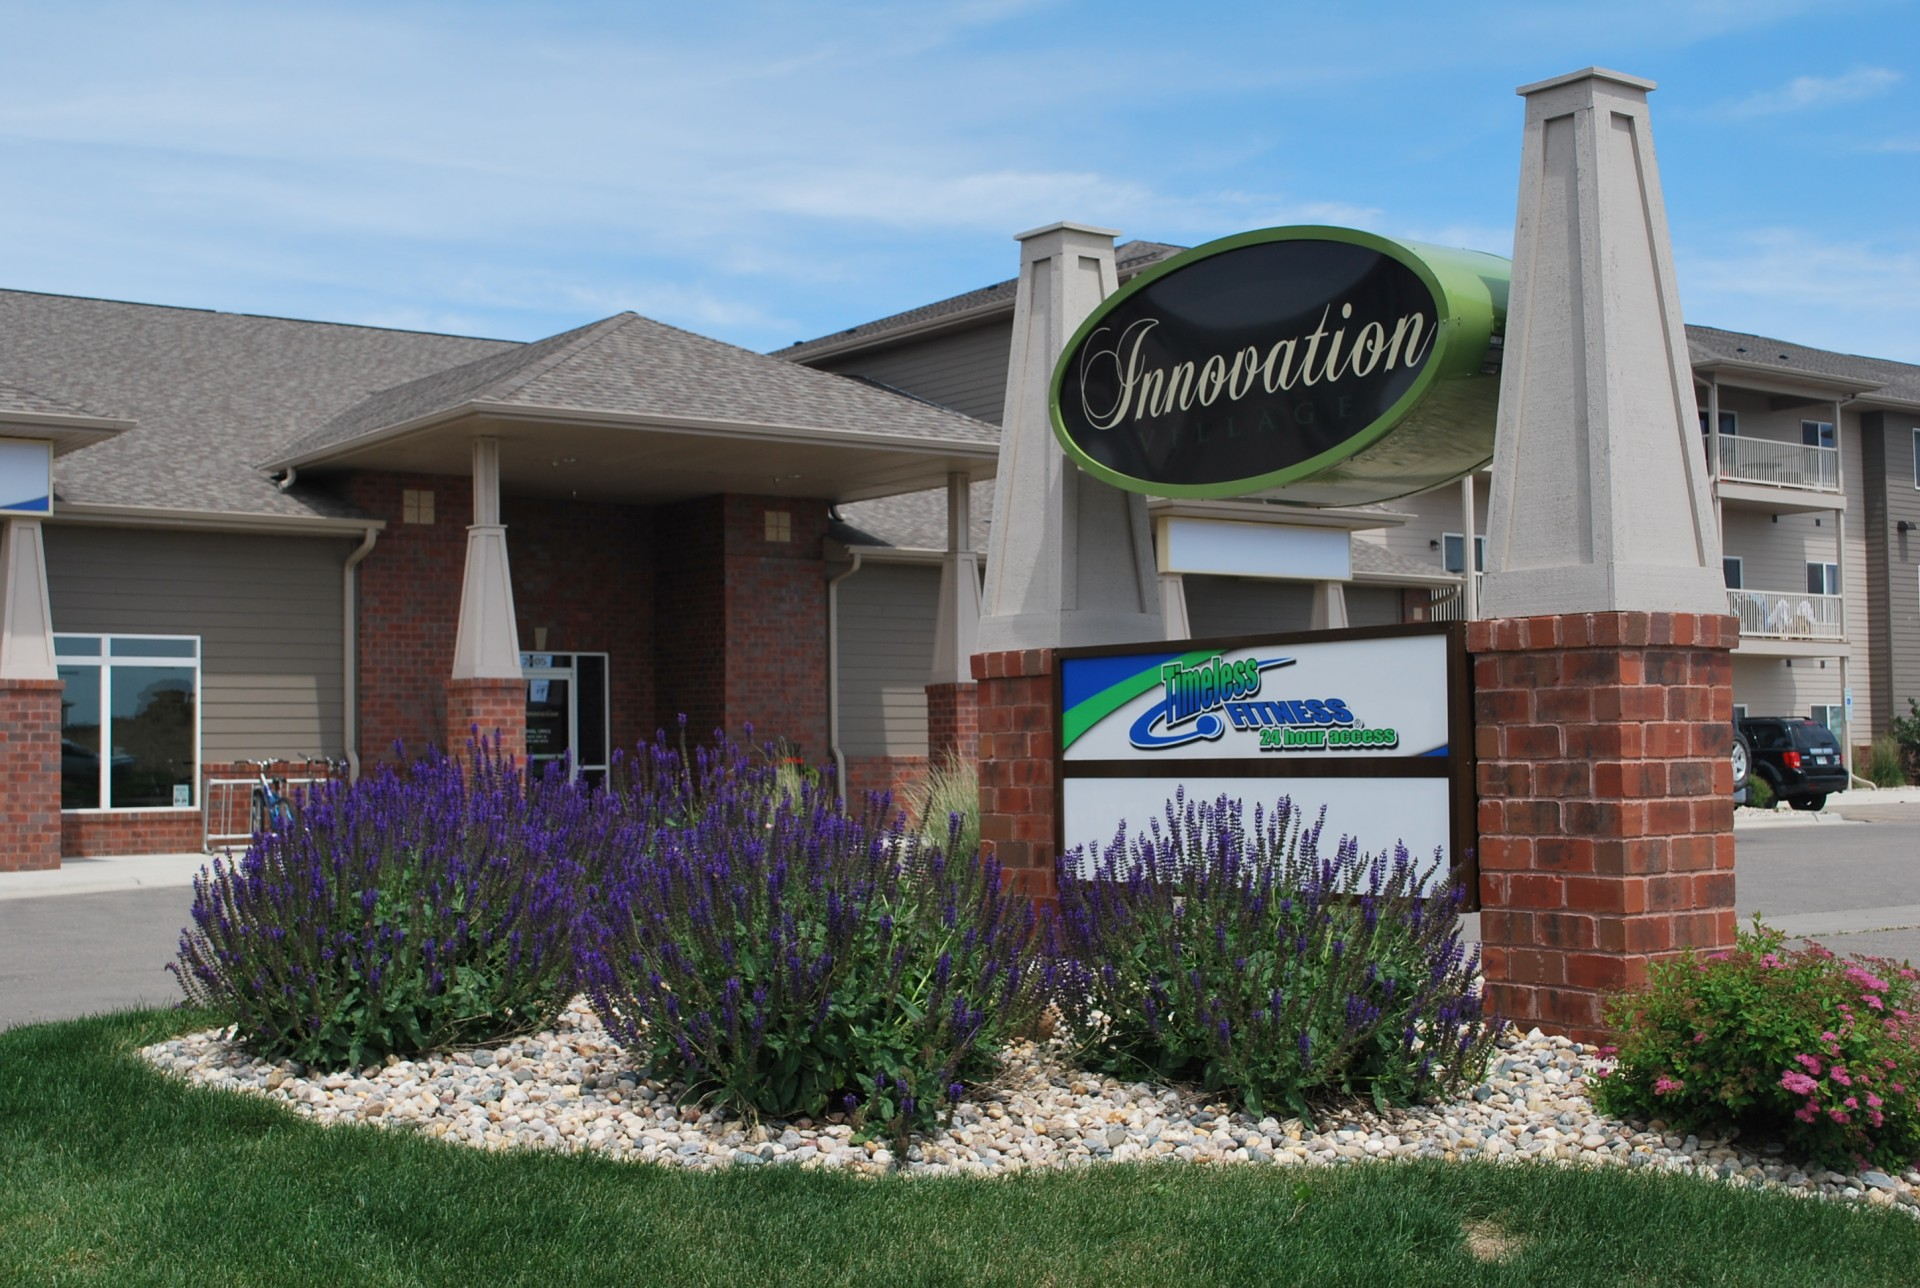 Innovation Village - Innovation Village is a unique and innovative apartment community in Brookings, SD